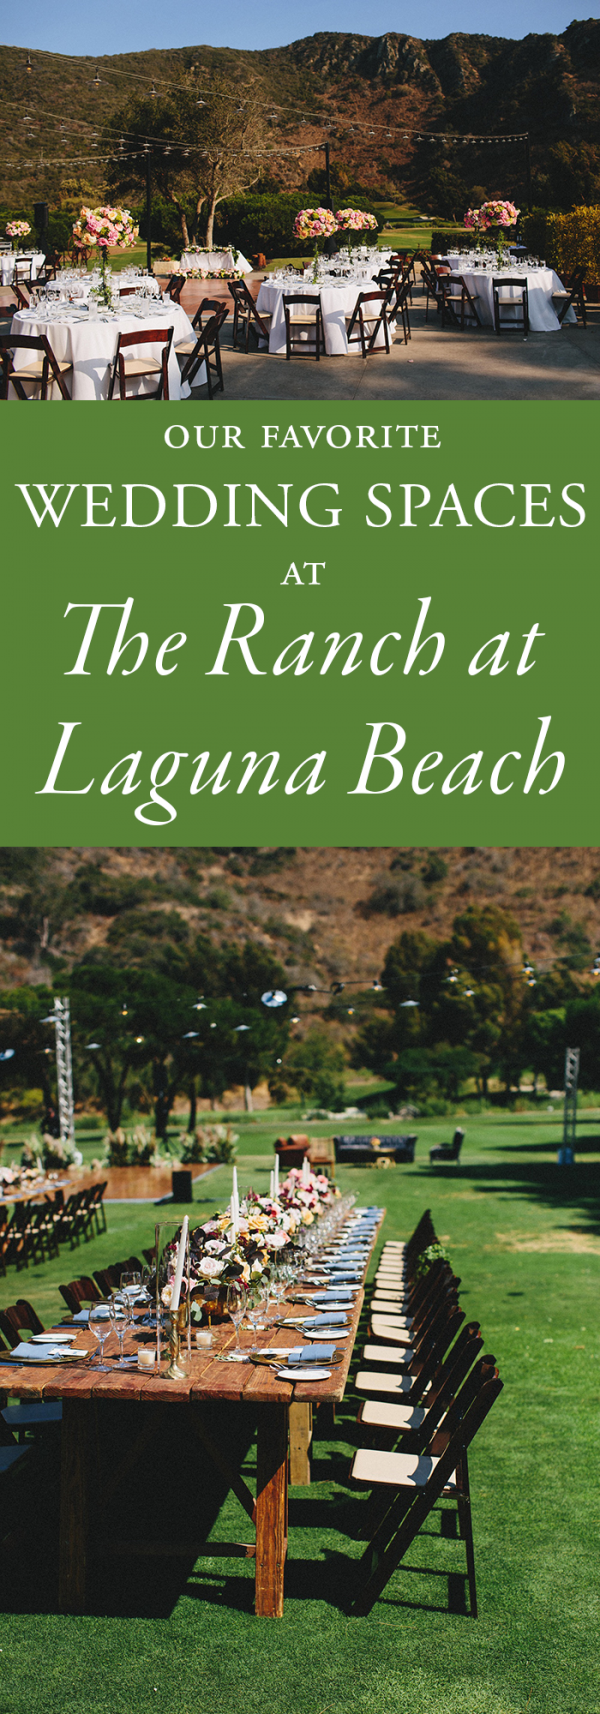 the ranch at laguna beach wedding spaces